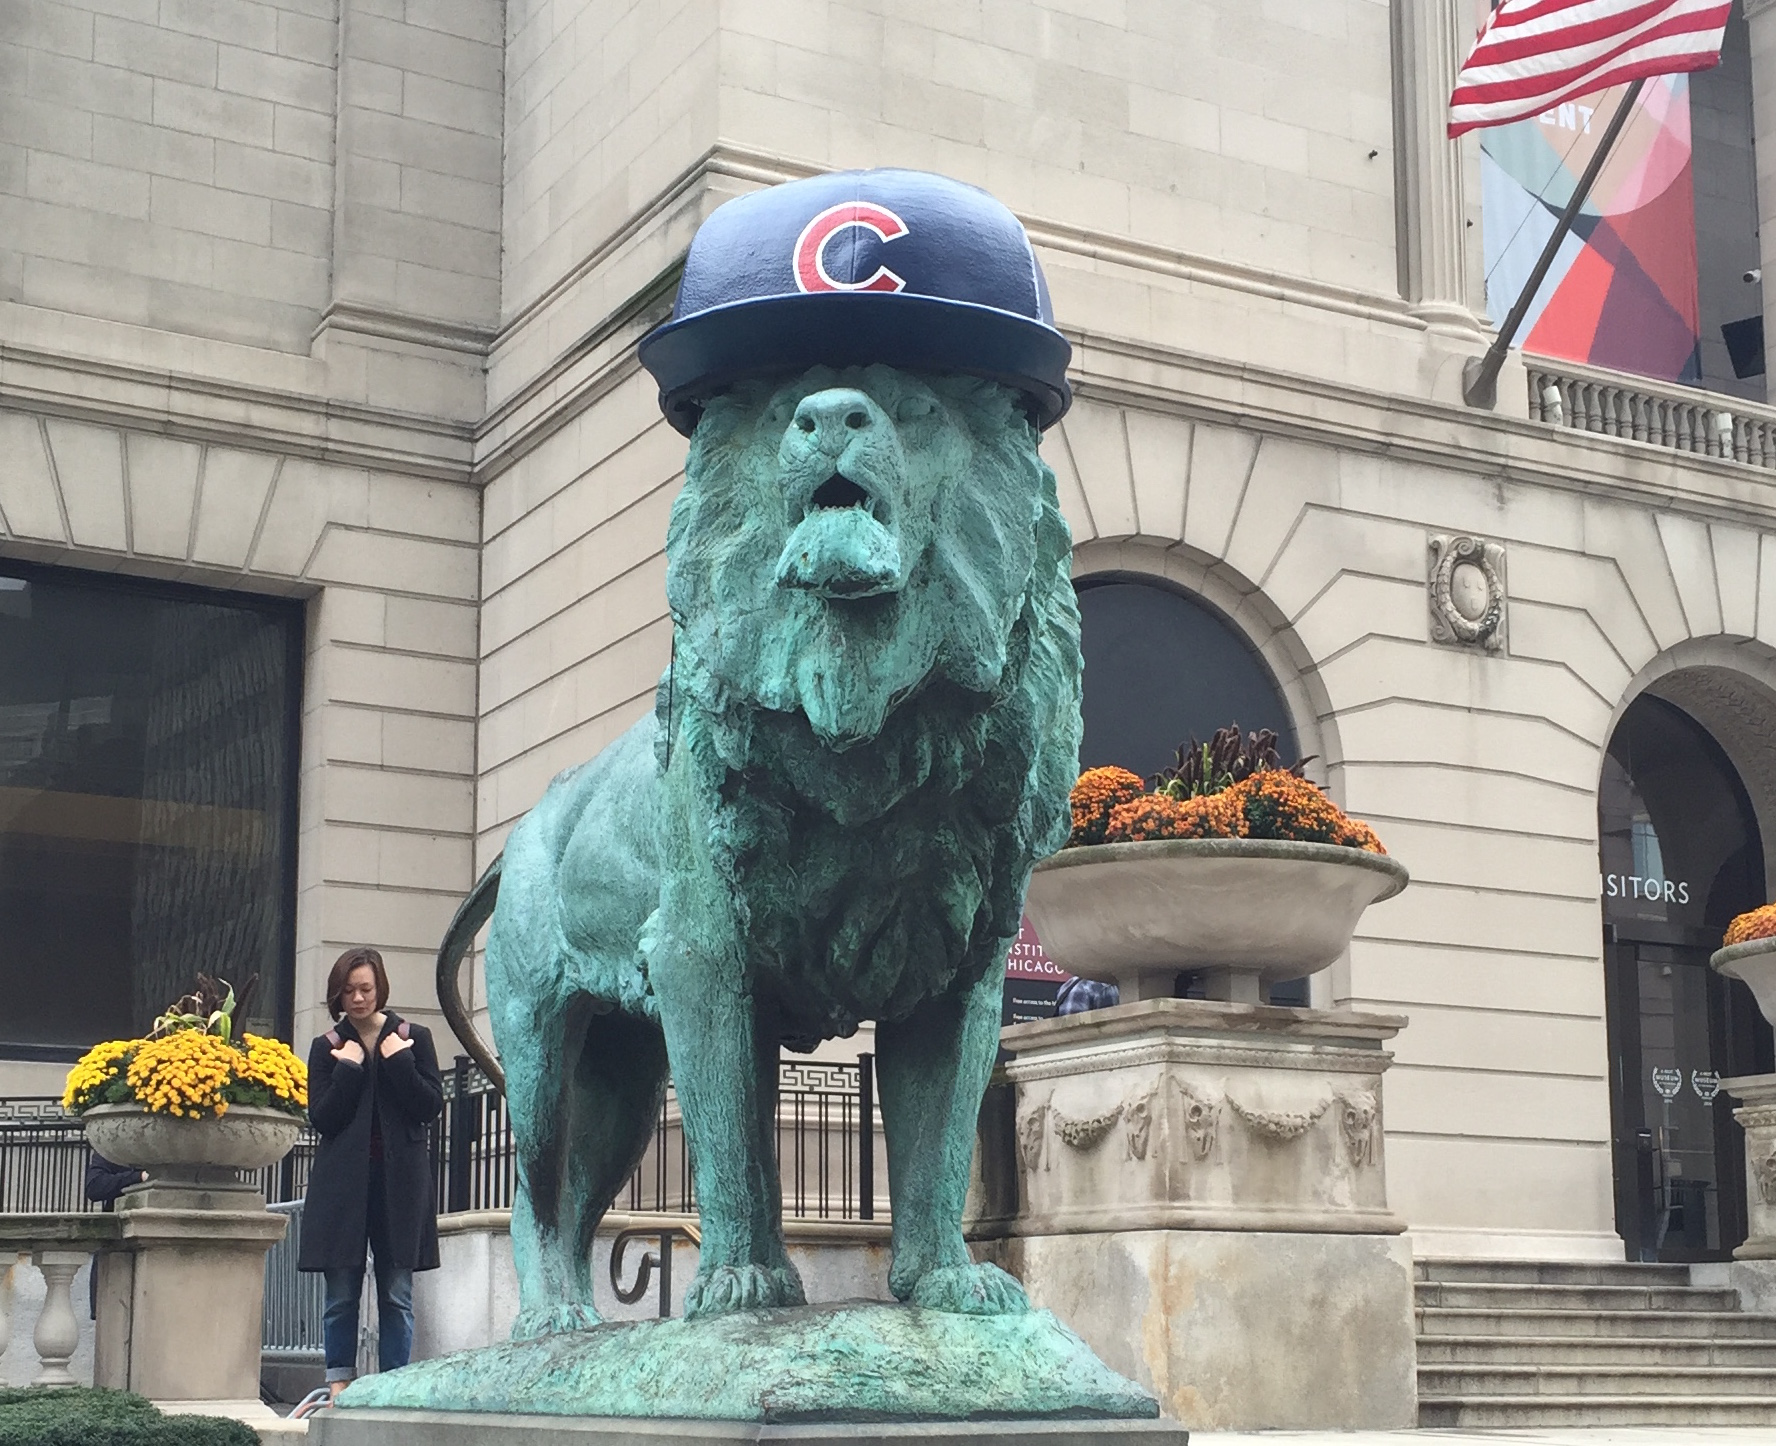 For the first time, the lions outside of the Art Institute of Chicago are adorned with Cubs hats, as the team competes in the 2016 World Series.